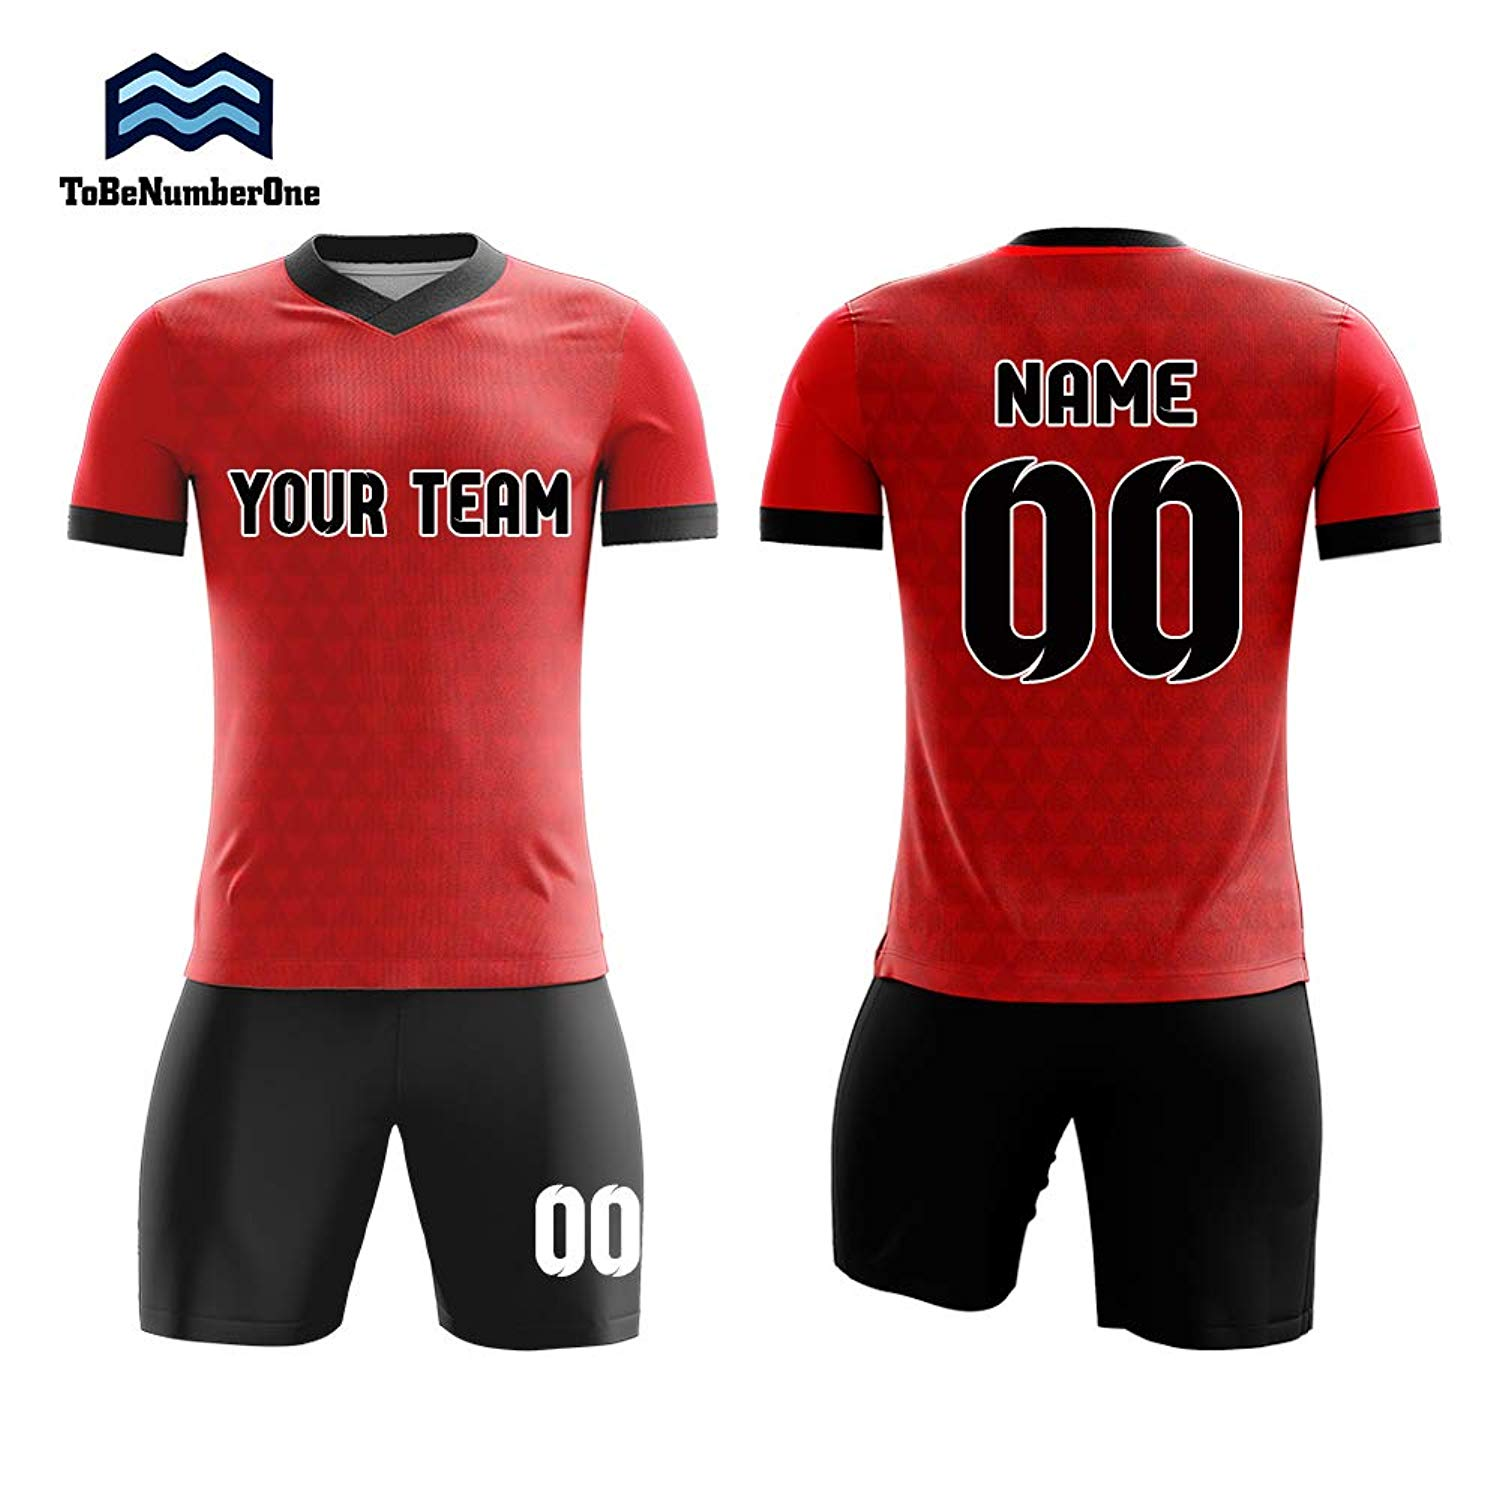 7e44c13cc8dd3 Get Quotations · Custom red Soccer Jerseys Sublimation Print Any Name,Number  for Your Team Uniforms